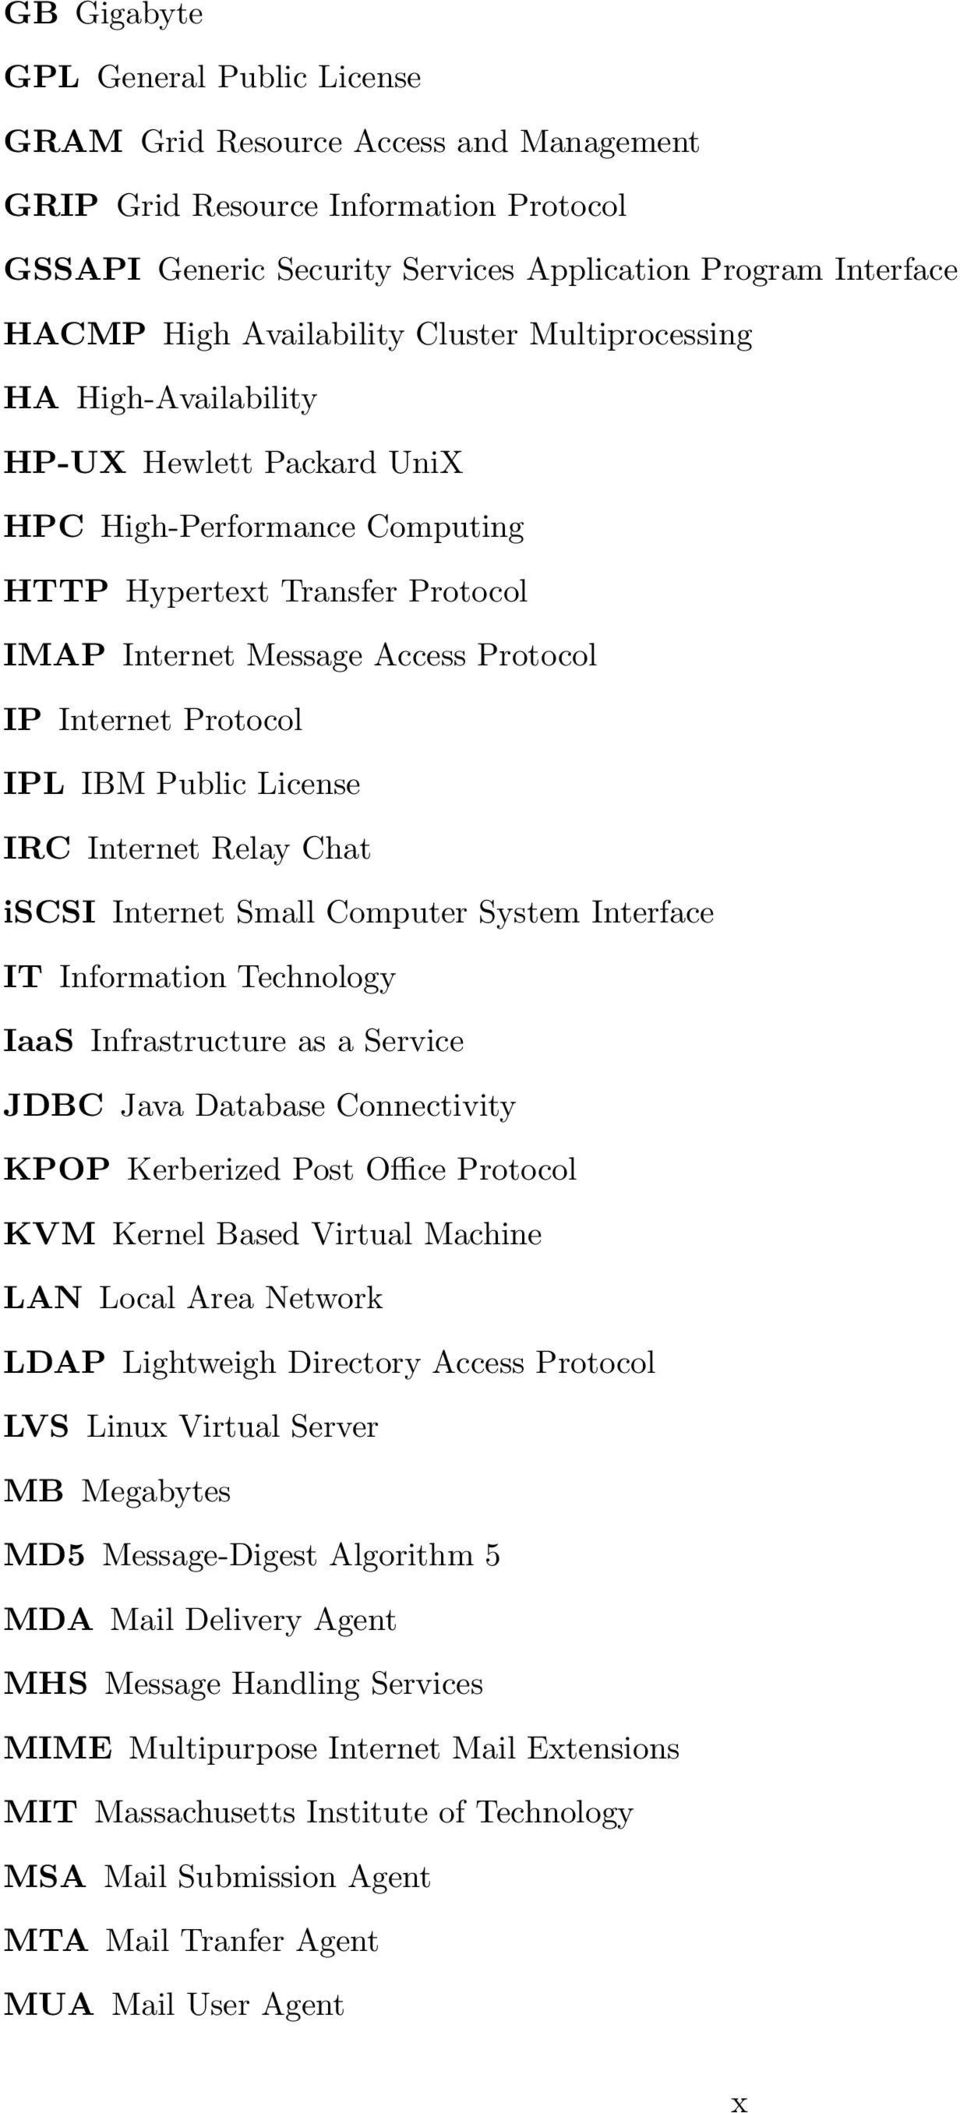 Protocol IPL IBM Public License IRC Internet Relay Chat iscsi Internet Small Computer System Interface IT Information Technology IaaS Infrastructure as a Service JDBC Java Database Connectivity KPOP